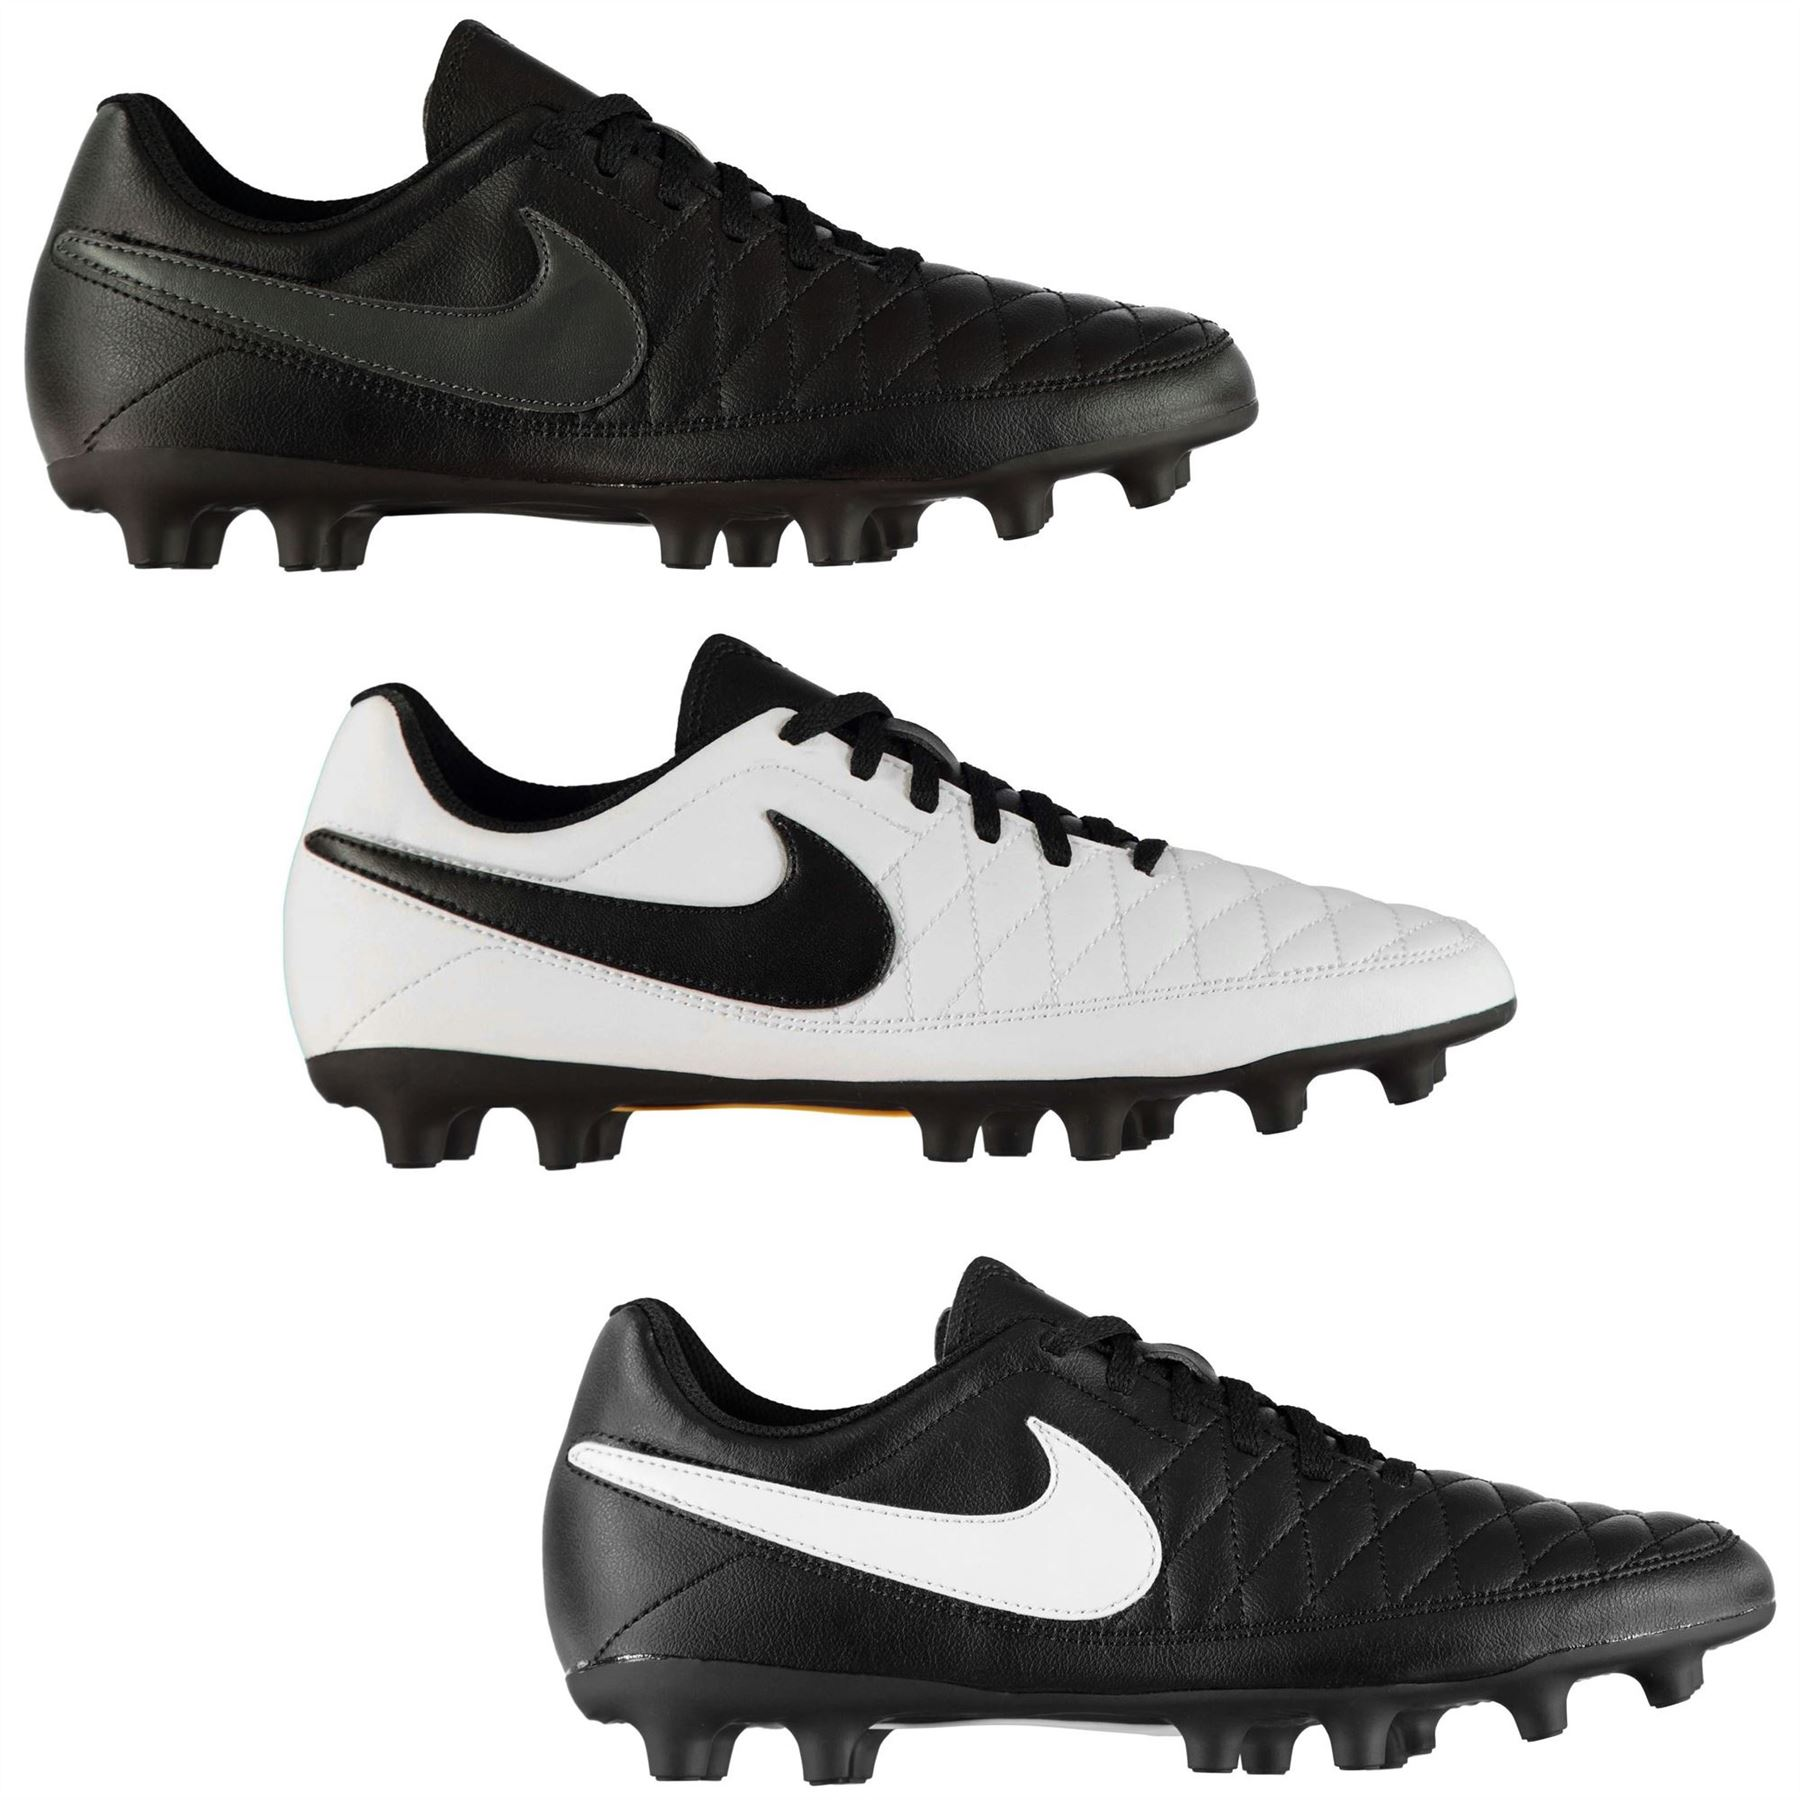 956f09ea7 ... Nike Majestry FG Firm Ground Football Boots Mens Soccer Shoes Cleats ...